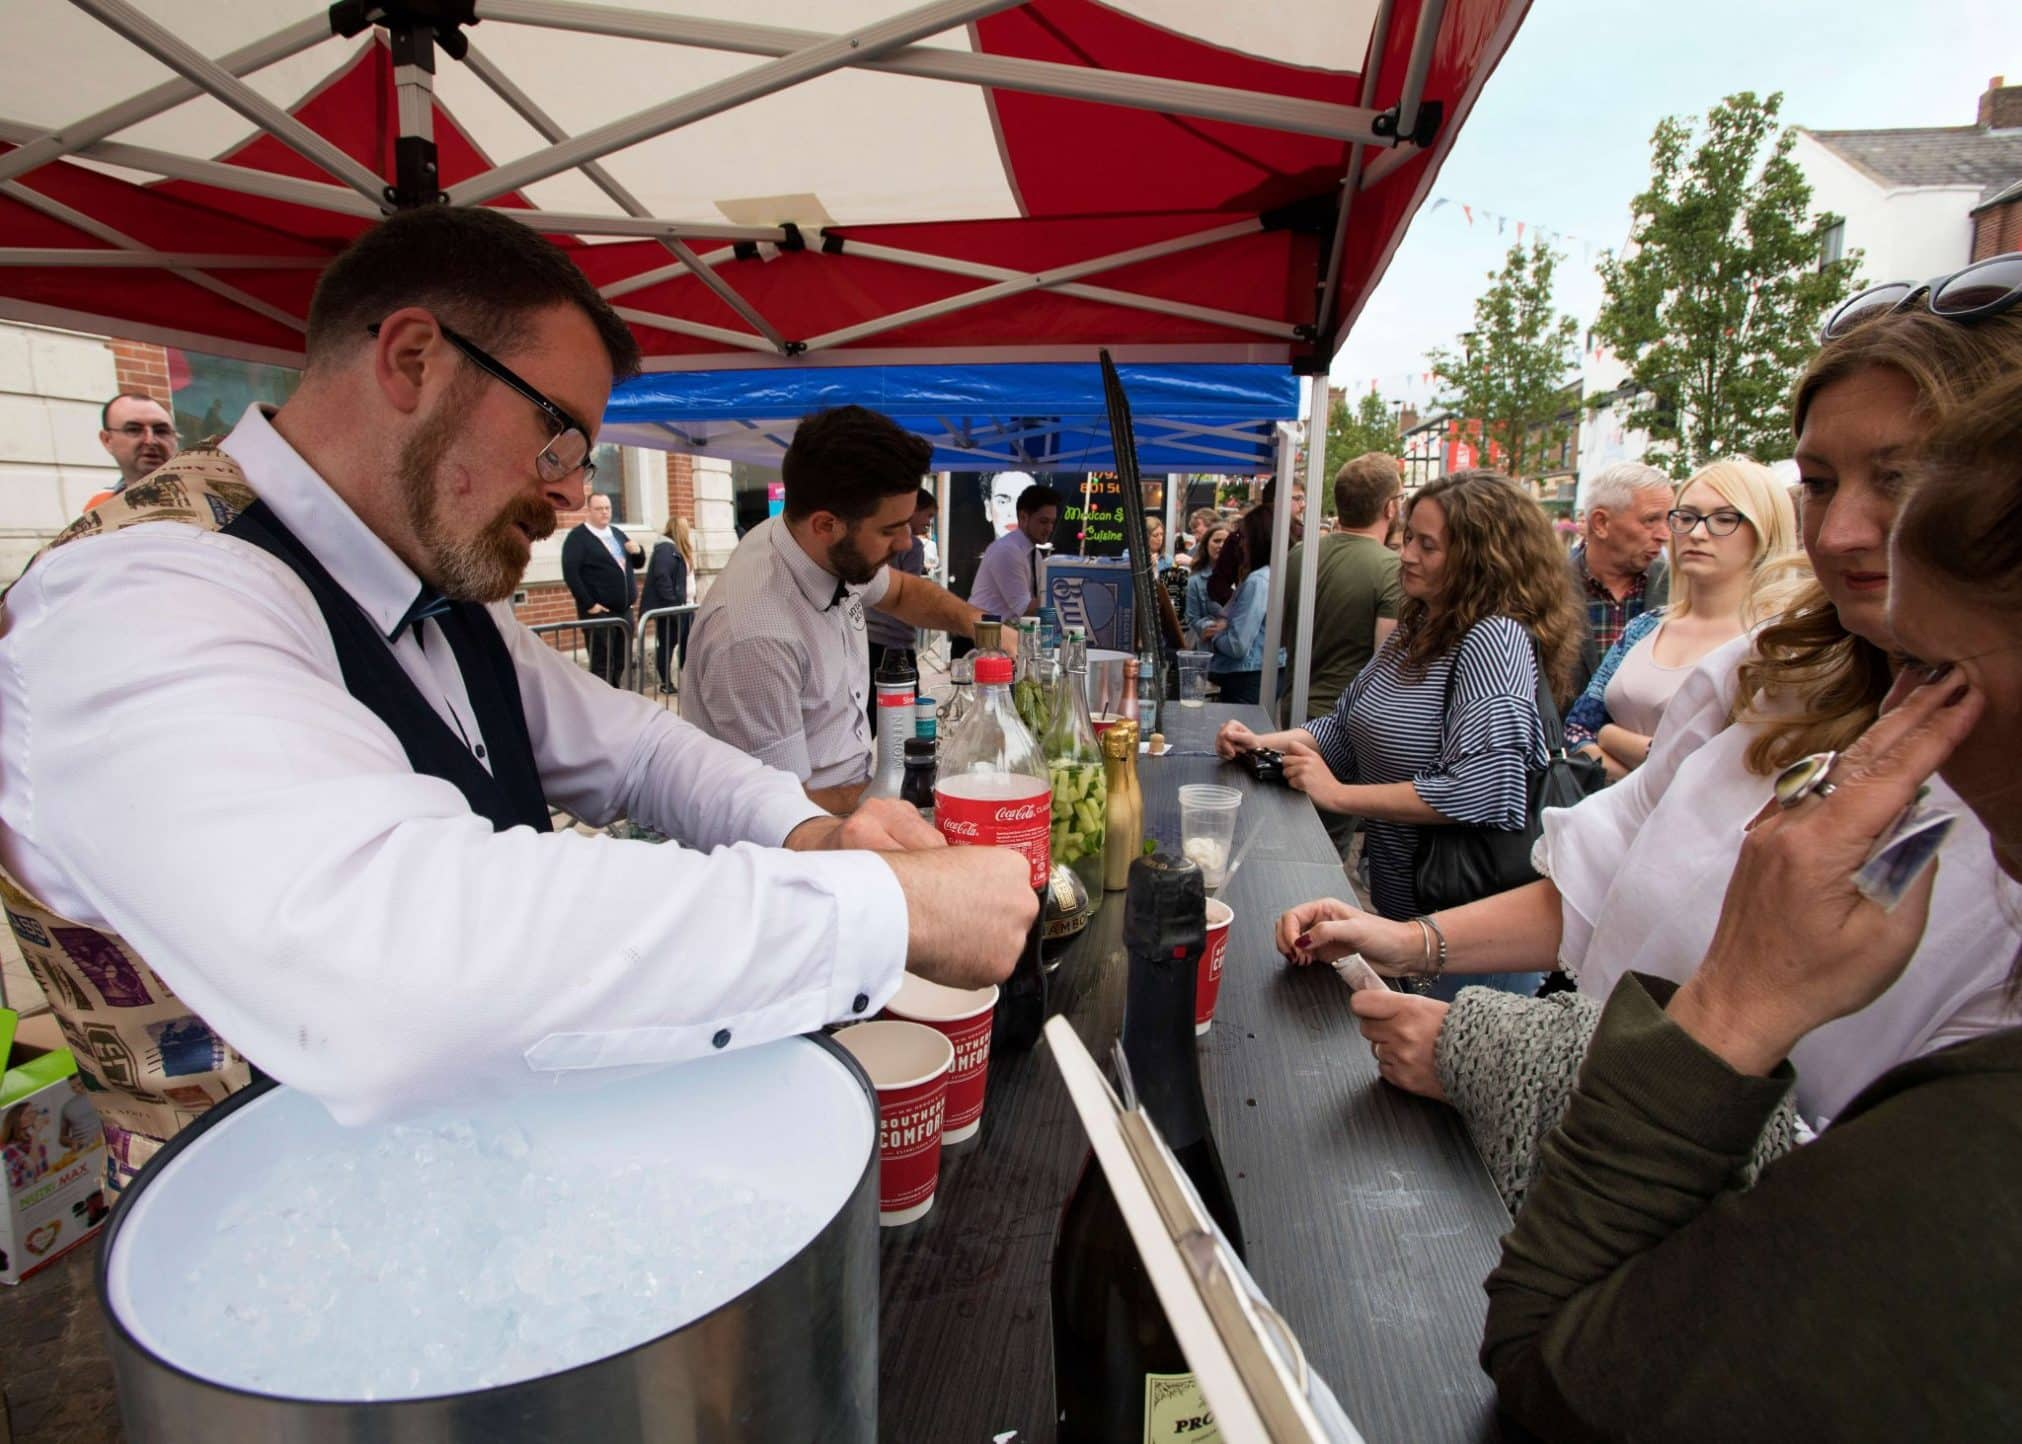 Drinks being served at Moor St Night Market in Ormskirk